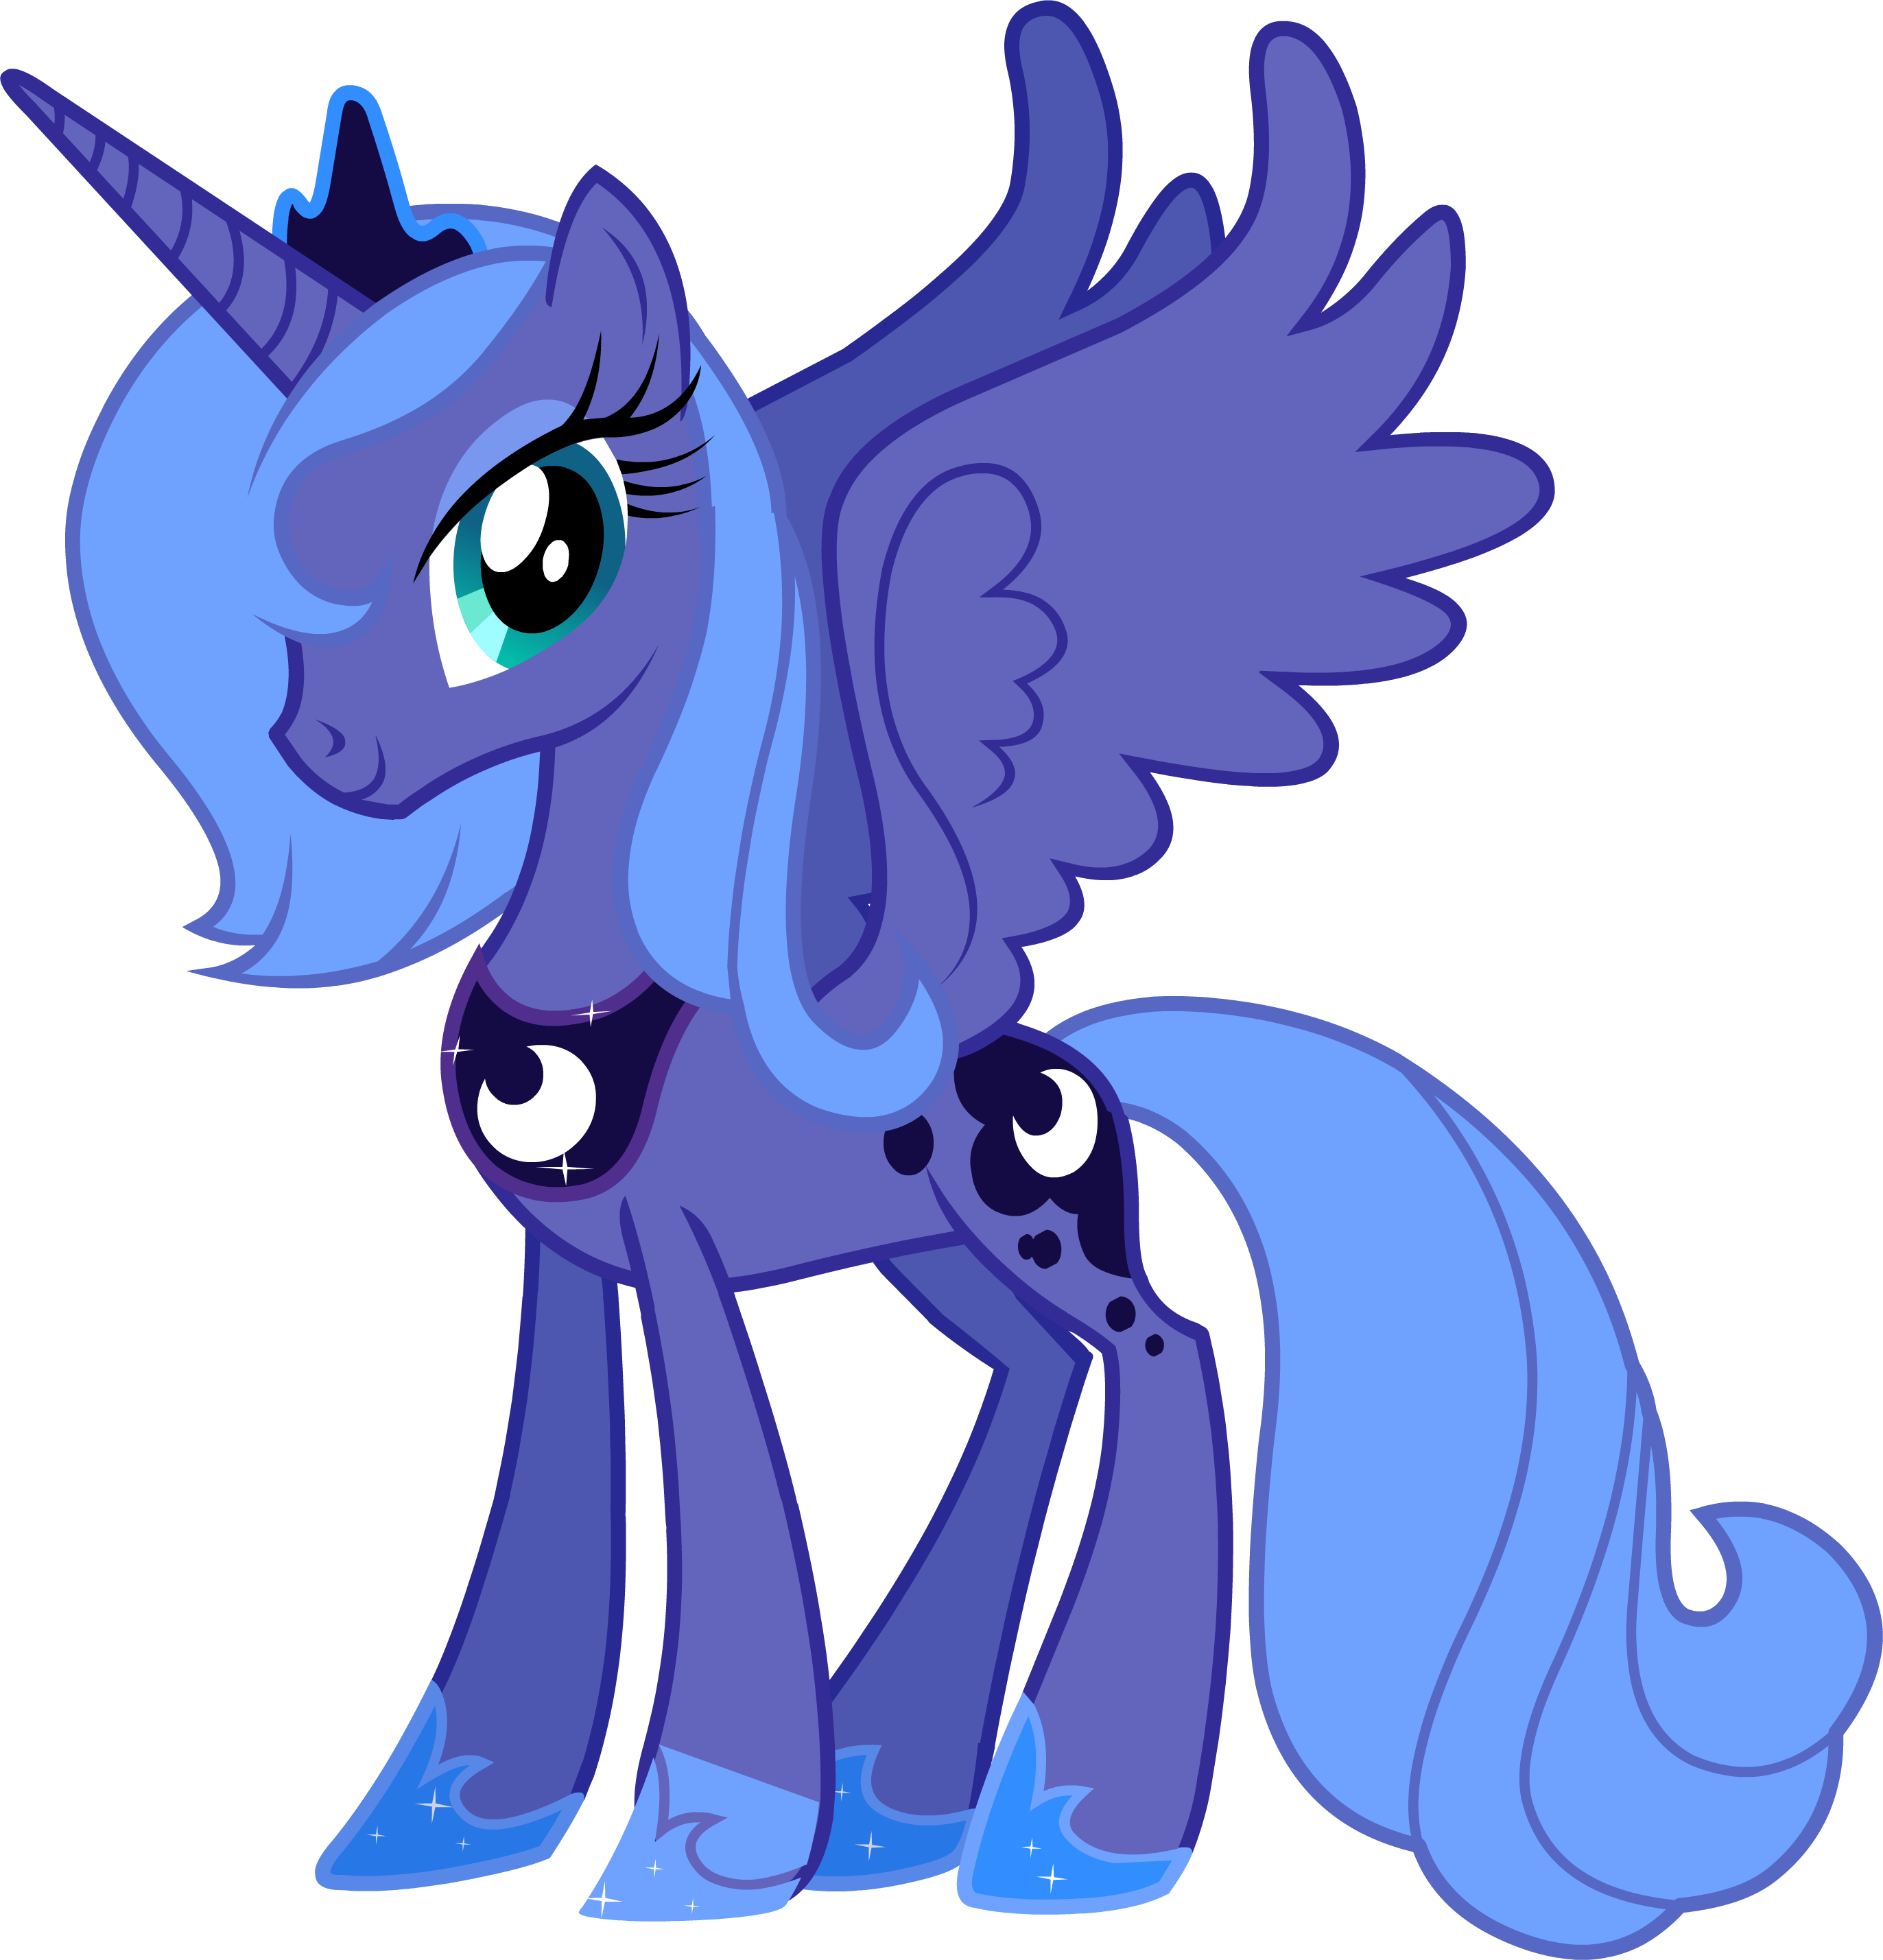 Princess Luna Images   My Little Pony Friendship Is Magic Wiki